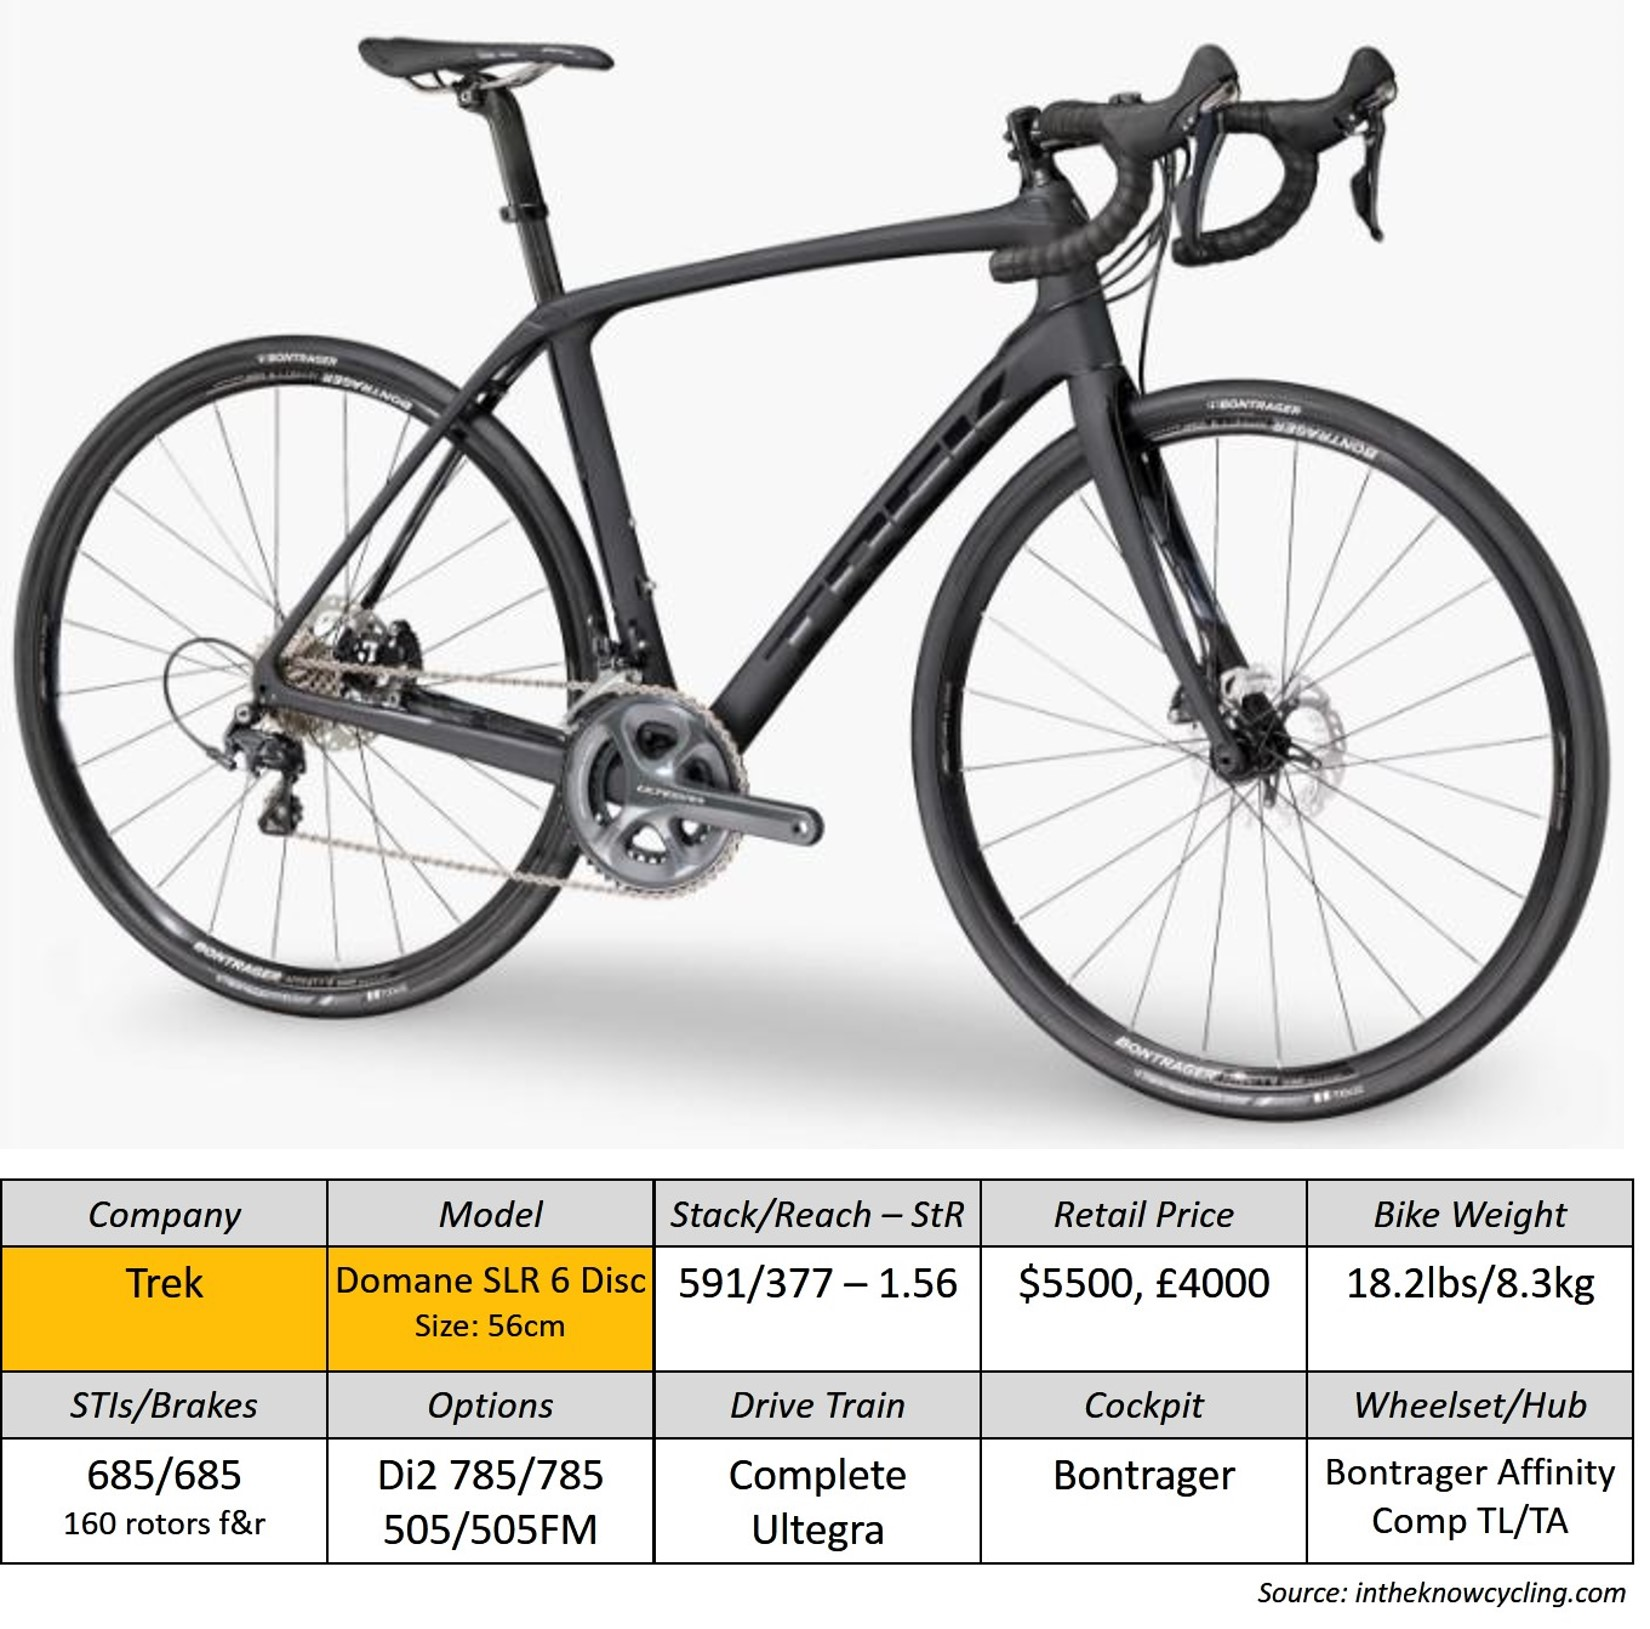 Some of the best 2016 endurance road bikes with disc brakes in trek domane slr 6 disc photo and chart geenschuldenfo Images